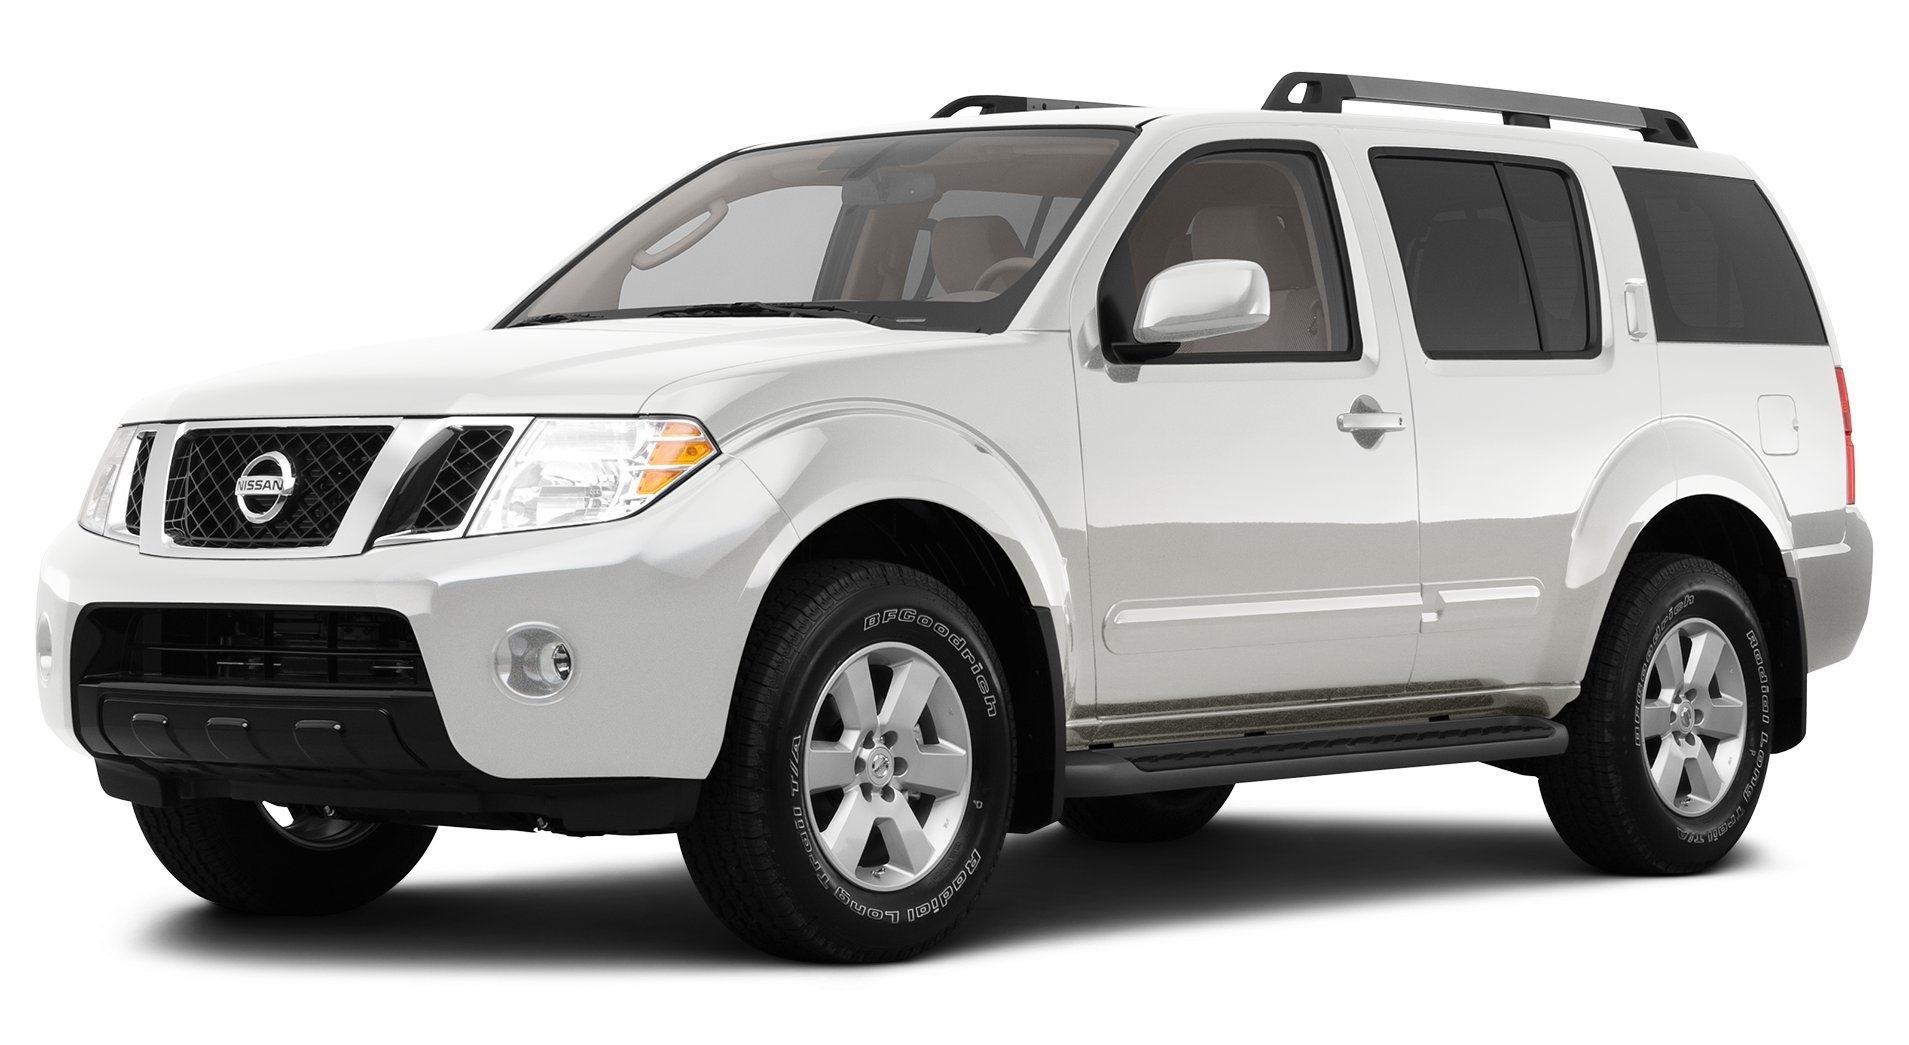 wallpapers wide images wallpaper and nissan pathfinder pixel us hd car